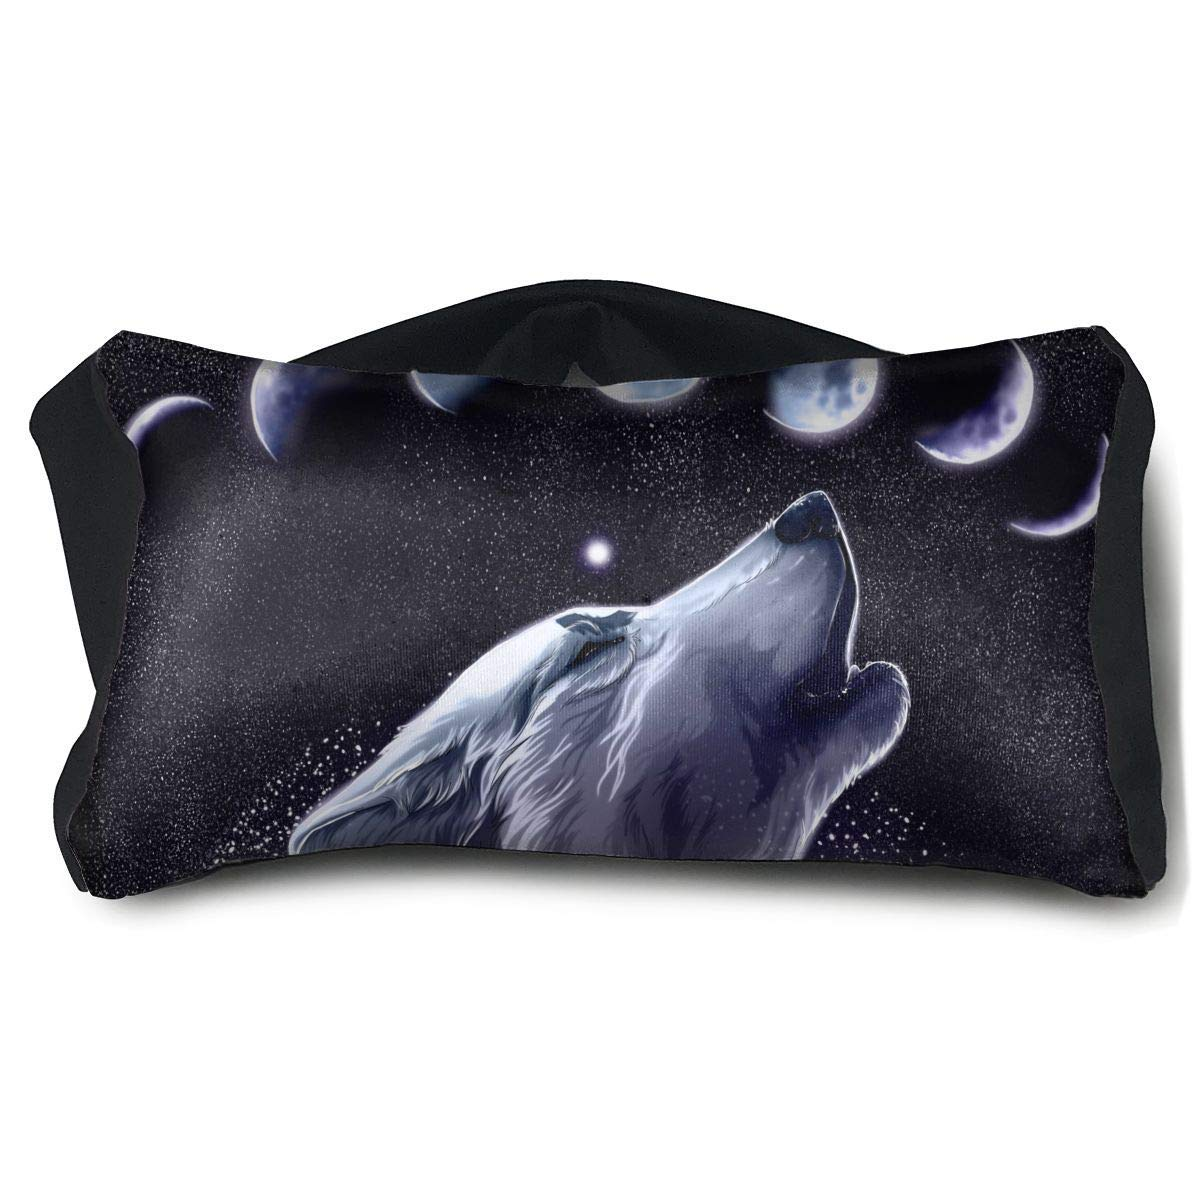 Amazon.com: Beatybag Portable Eye Pillow Moon Wolf Eyeshade ...